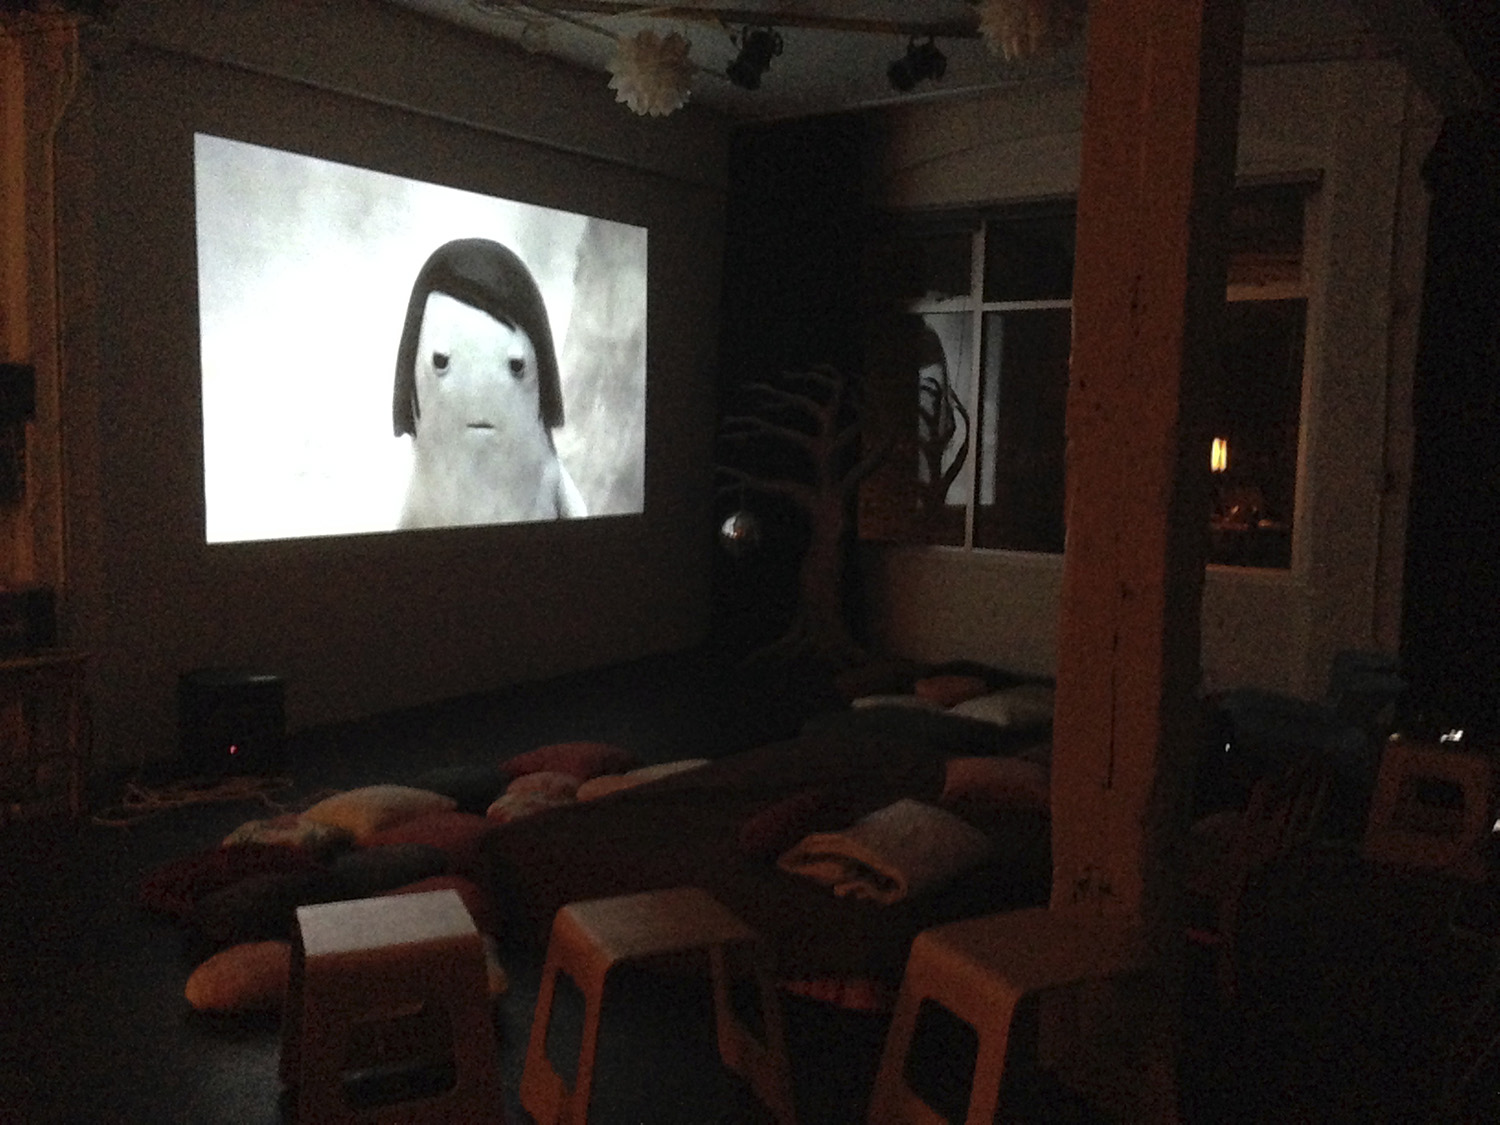 Testing projection with Kirsten Lepore's 'Move Mountain'.